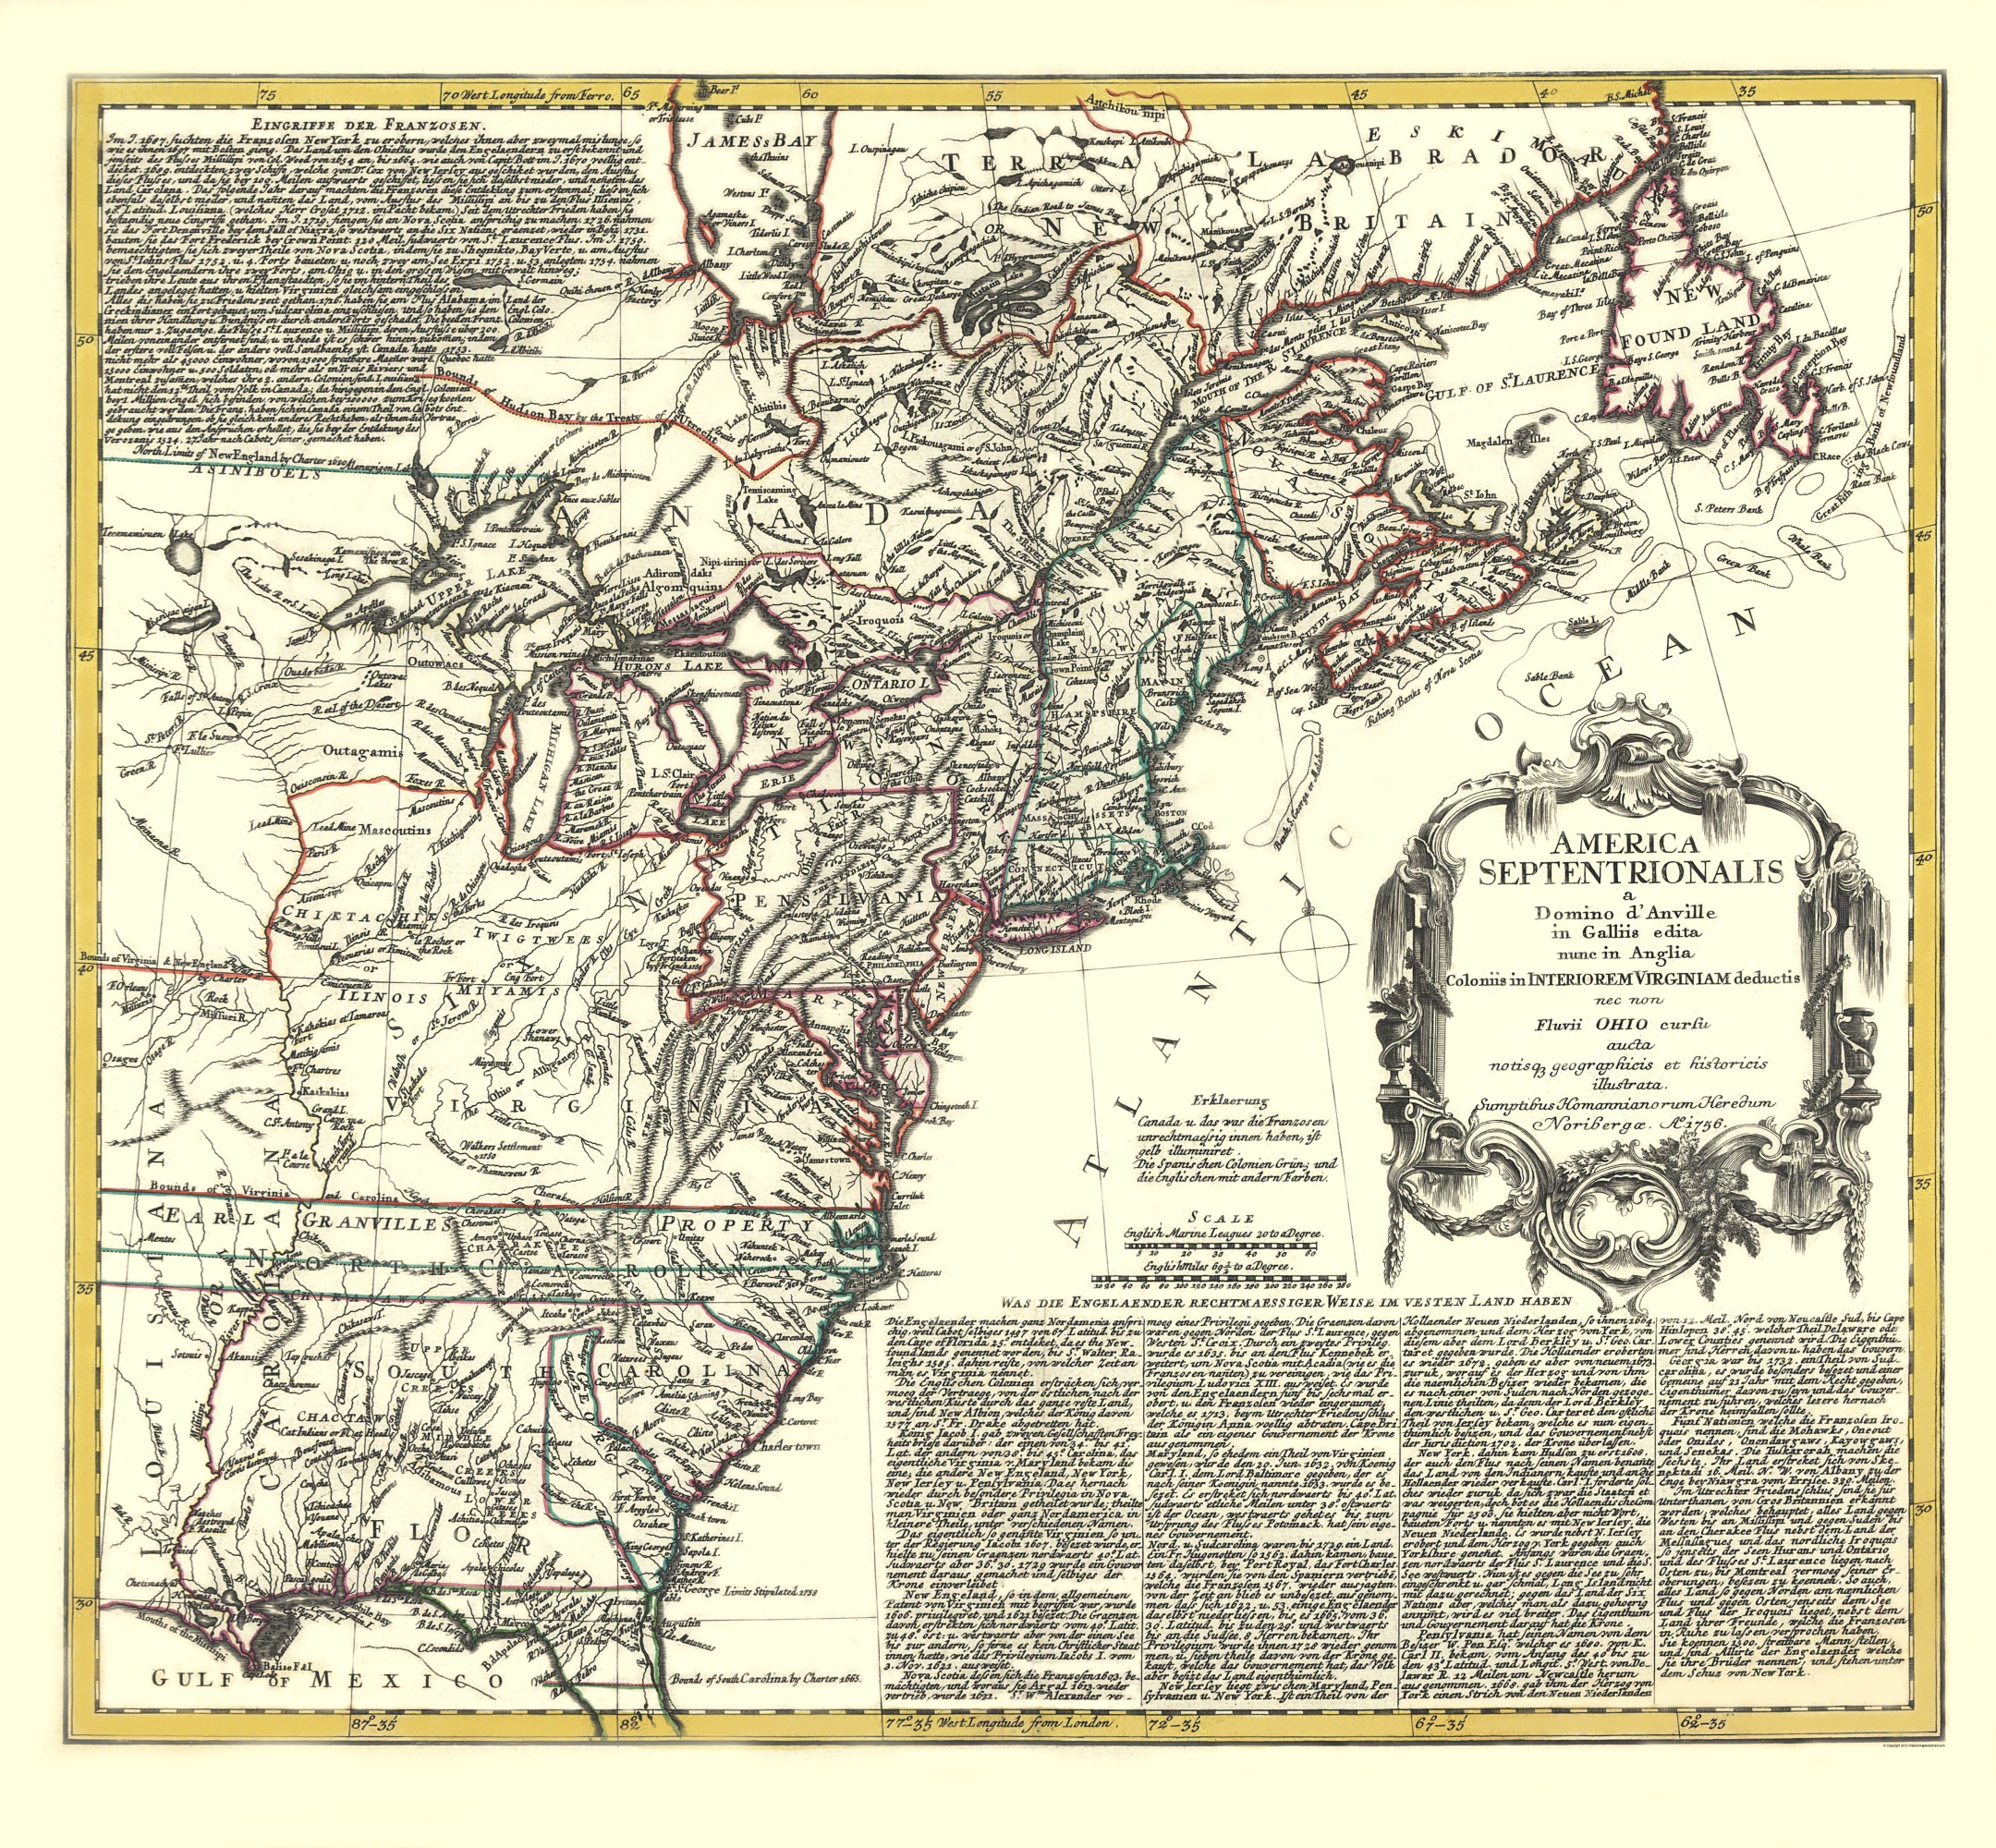 Revolutionary War Map Of New York.Old War Map North America And Virginia Colonies 1756